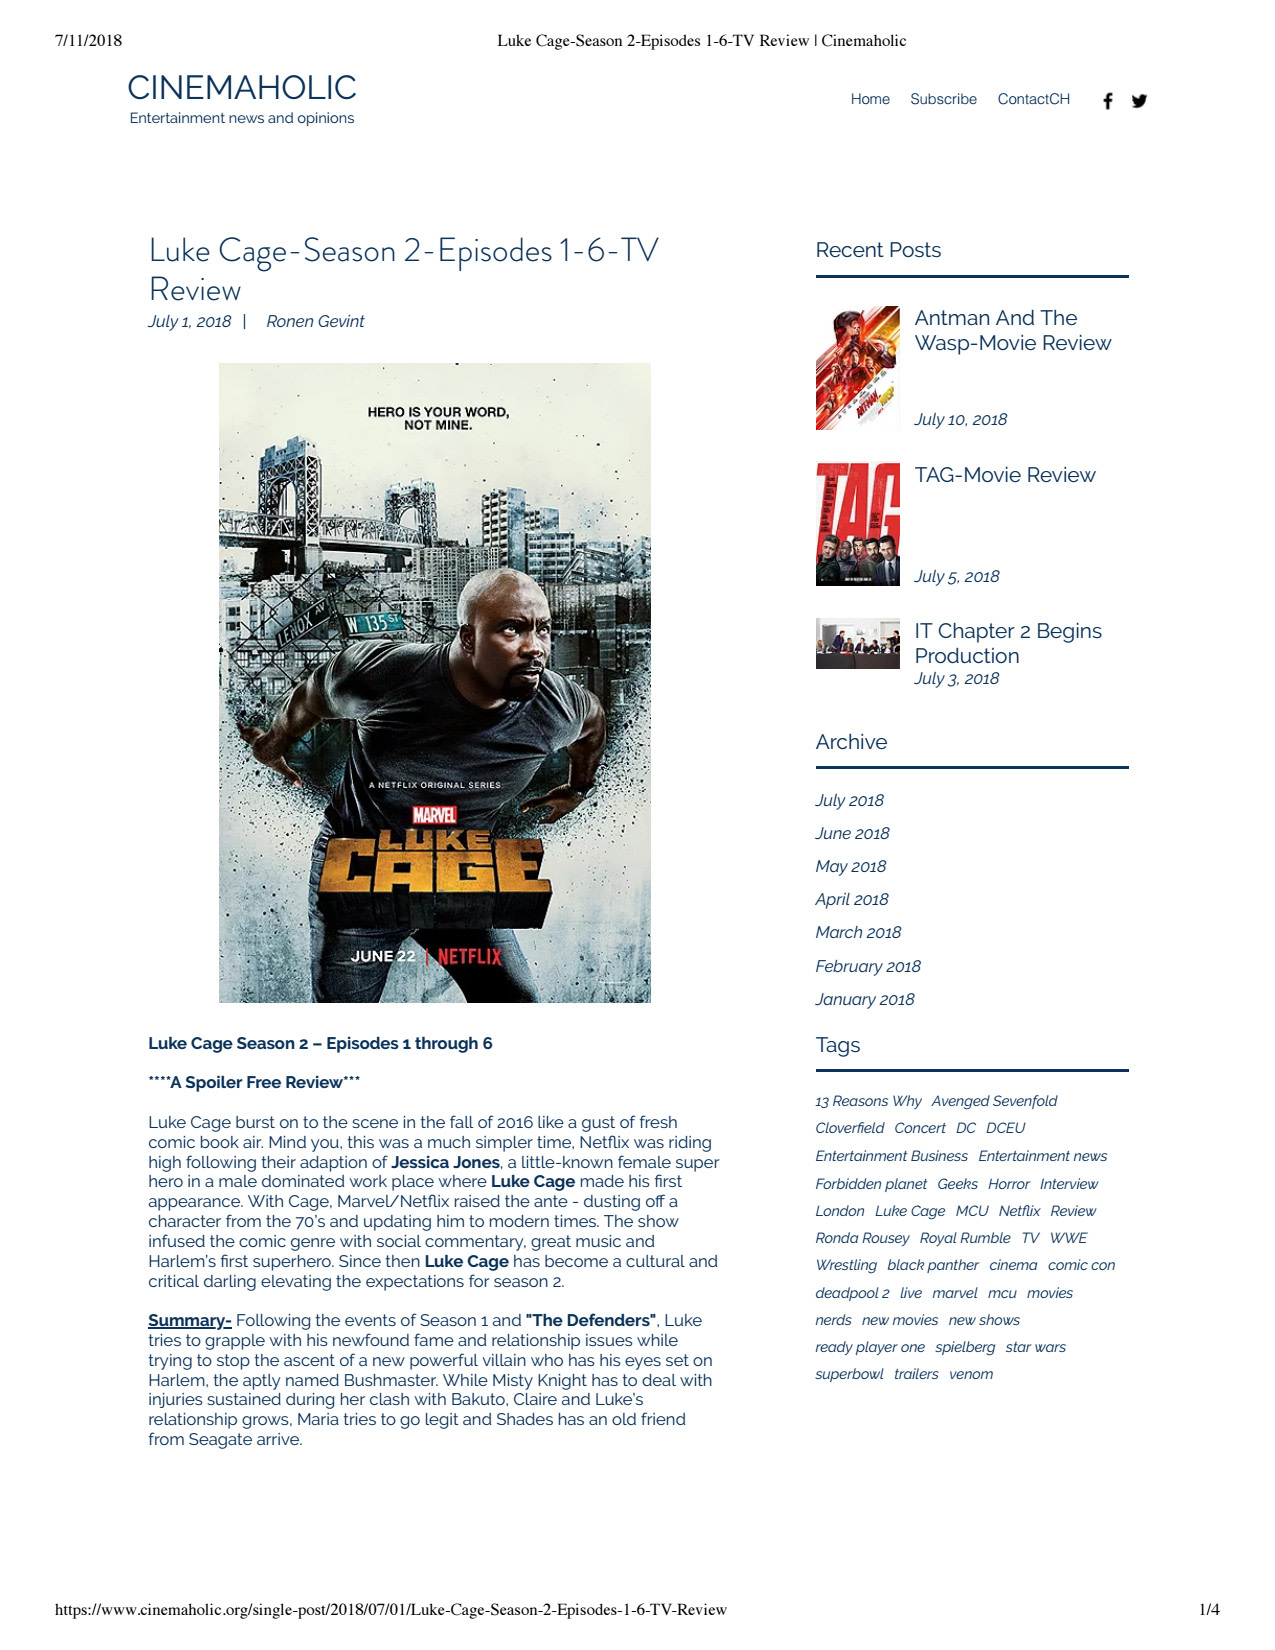 Online review for Netflix's Luke Cage - WNW